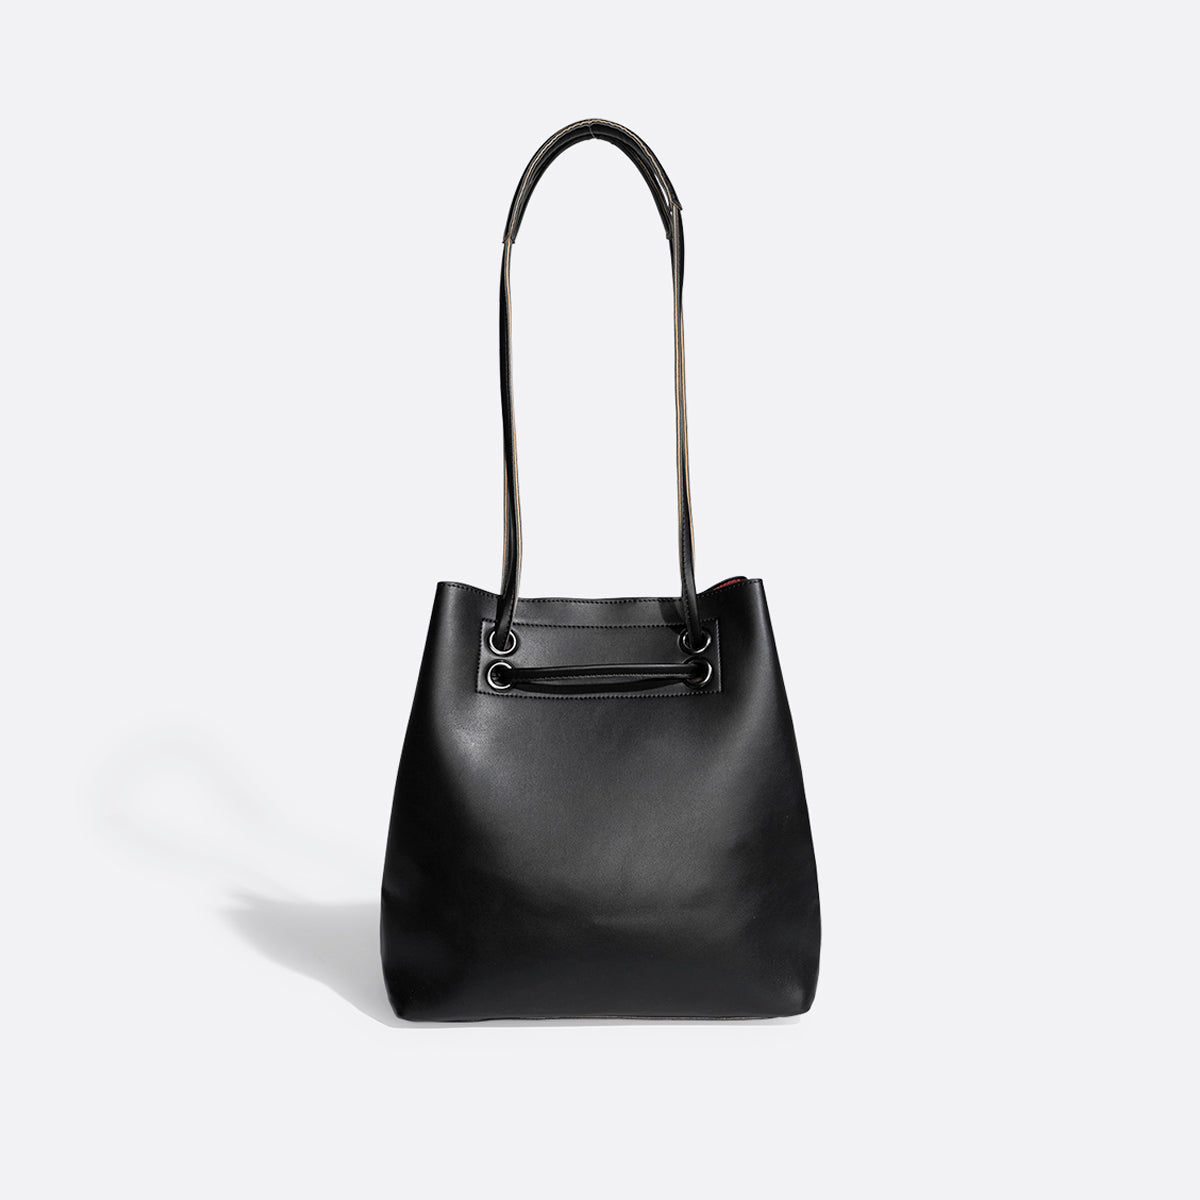 Molly Bag - Black or Cloud